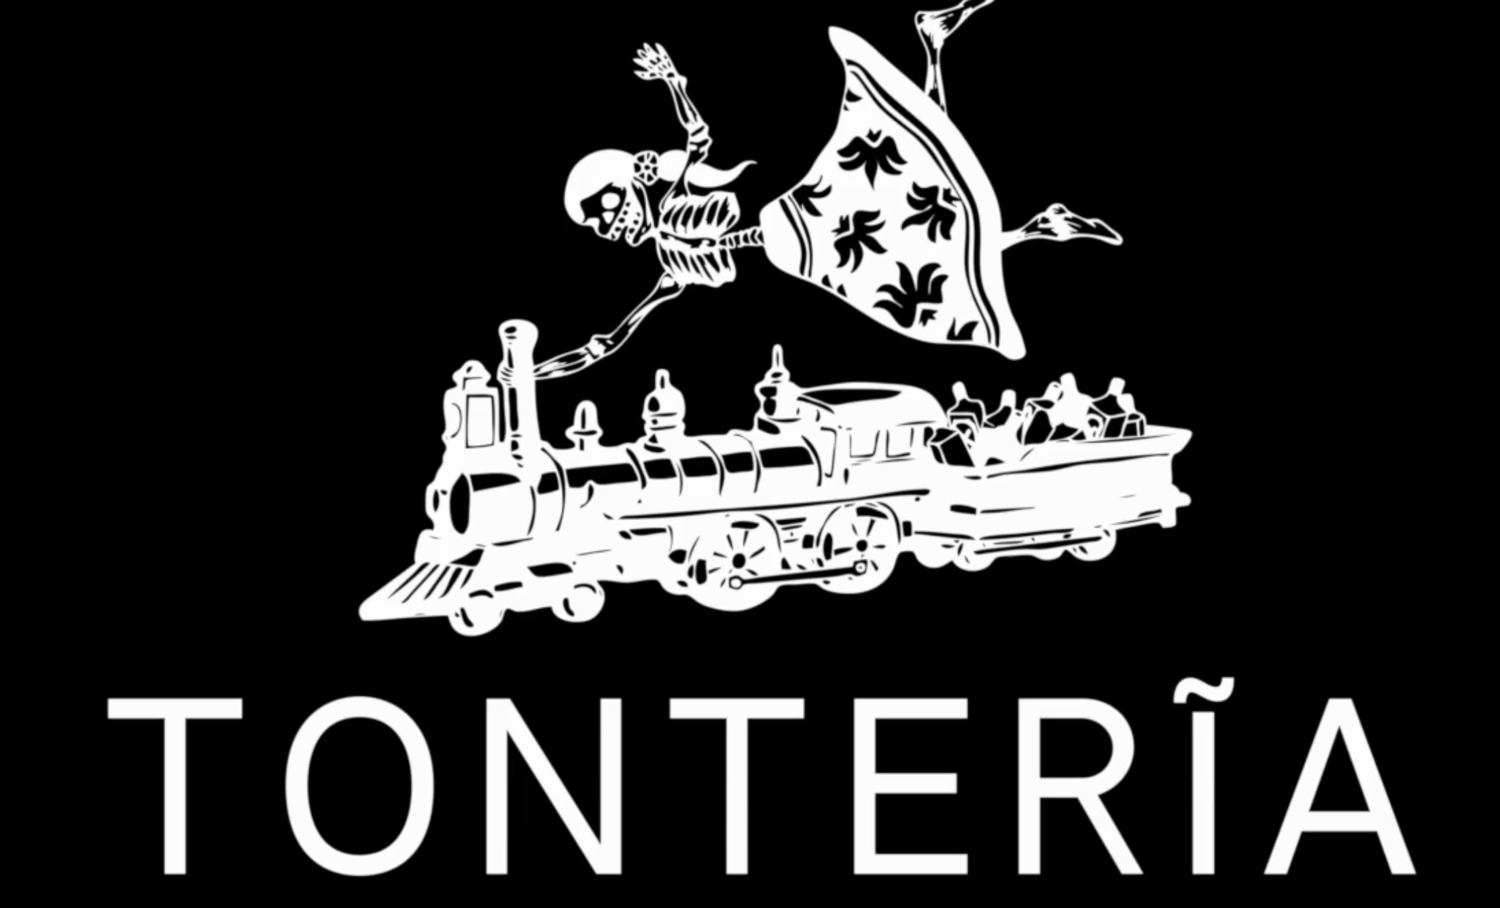 Tonteria will be our first venue this week. With Muertos Monday on the cards spirits are definitely high, we always anticipate Tonteria on Monday, it's proven on many occasion to be the best way to celebrate a Monday night.